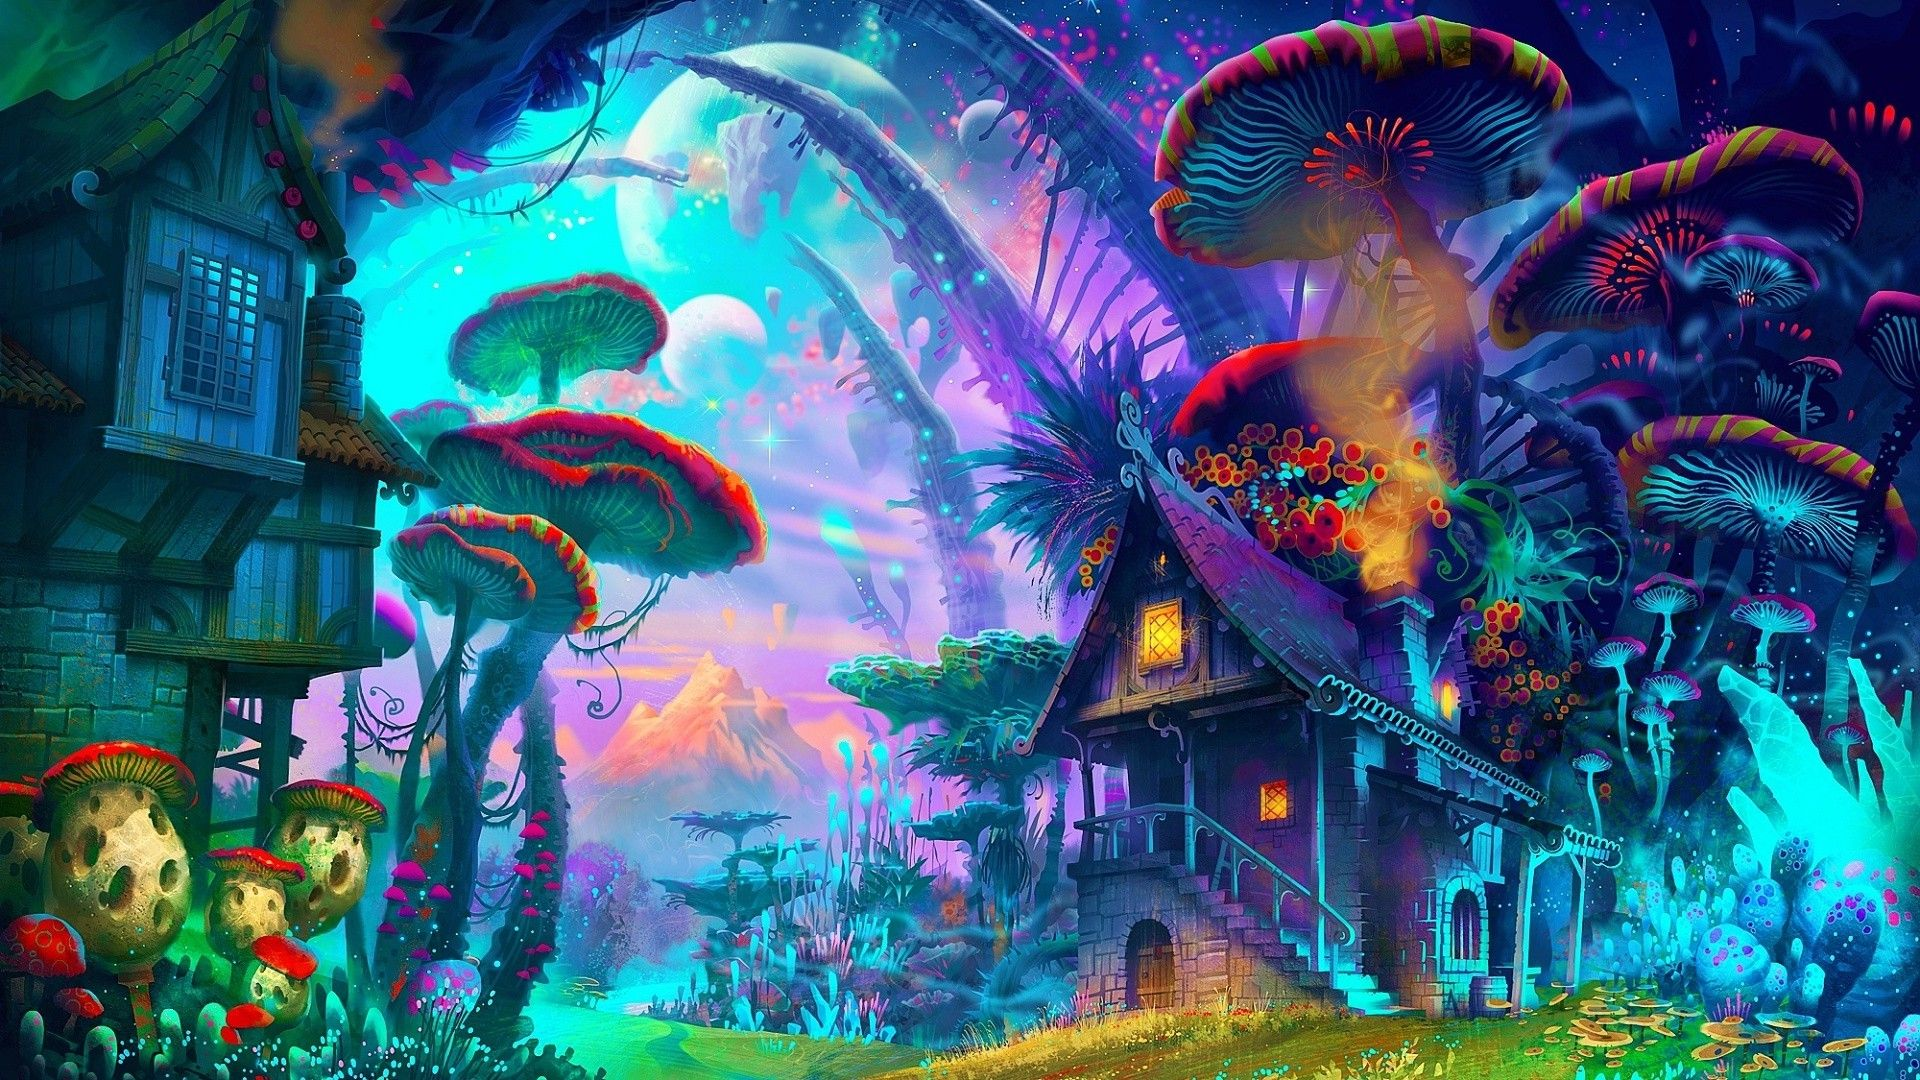 Download Hd Wallpapers Of 160755 Fantasy Art Drawing Nature Psychedelic Colorful House Mushroom Planet Nature Art Drawings Art Wallpaper Psychedelic Art